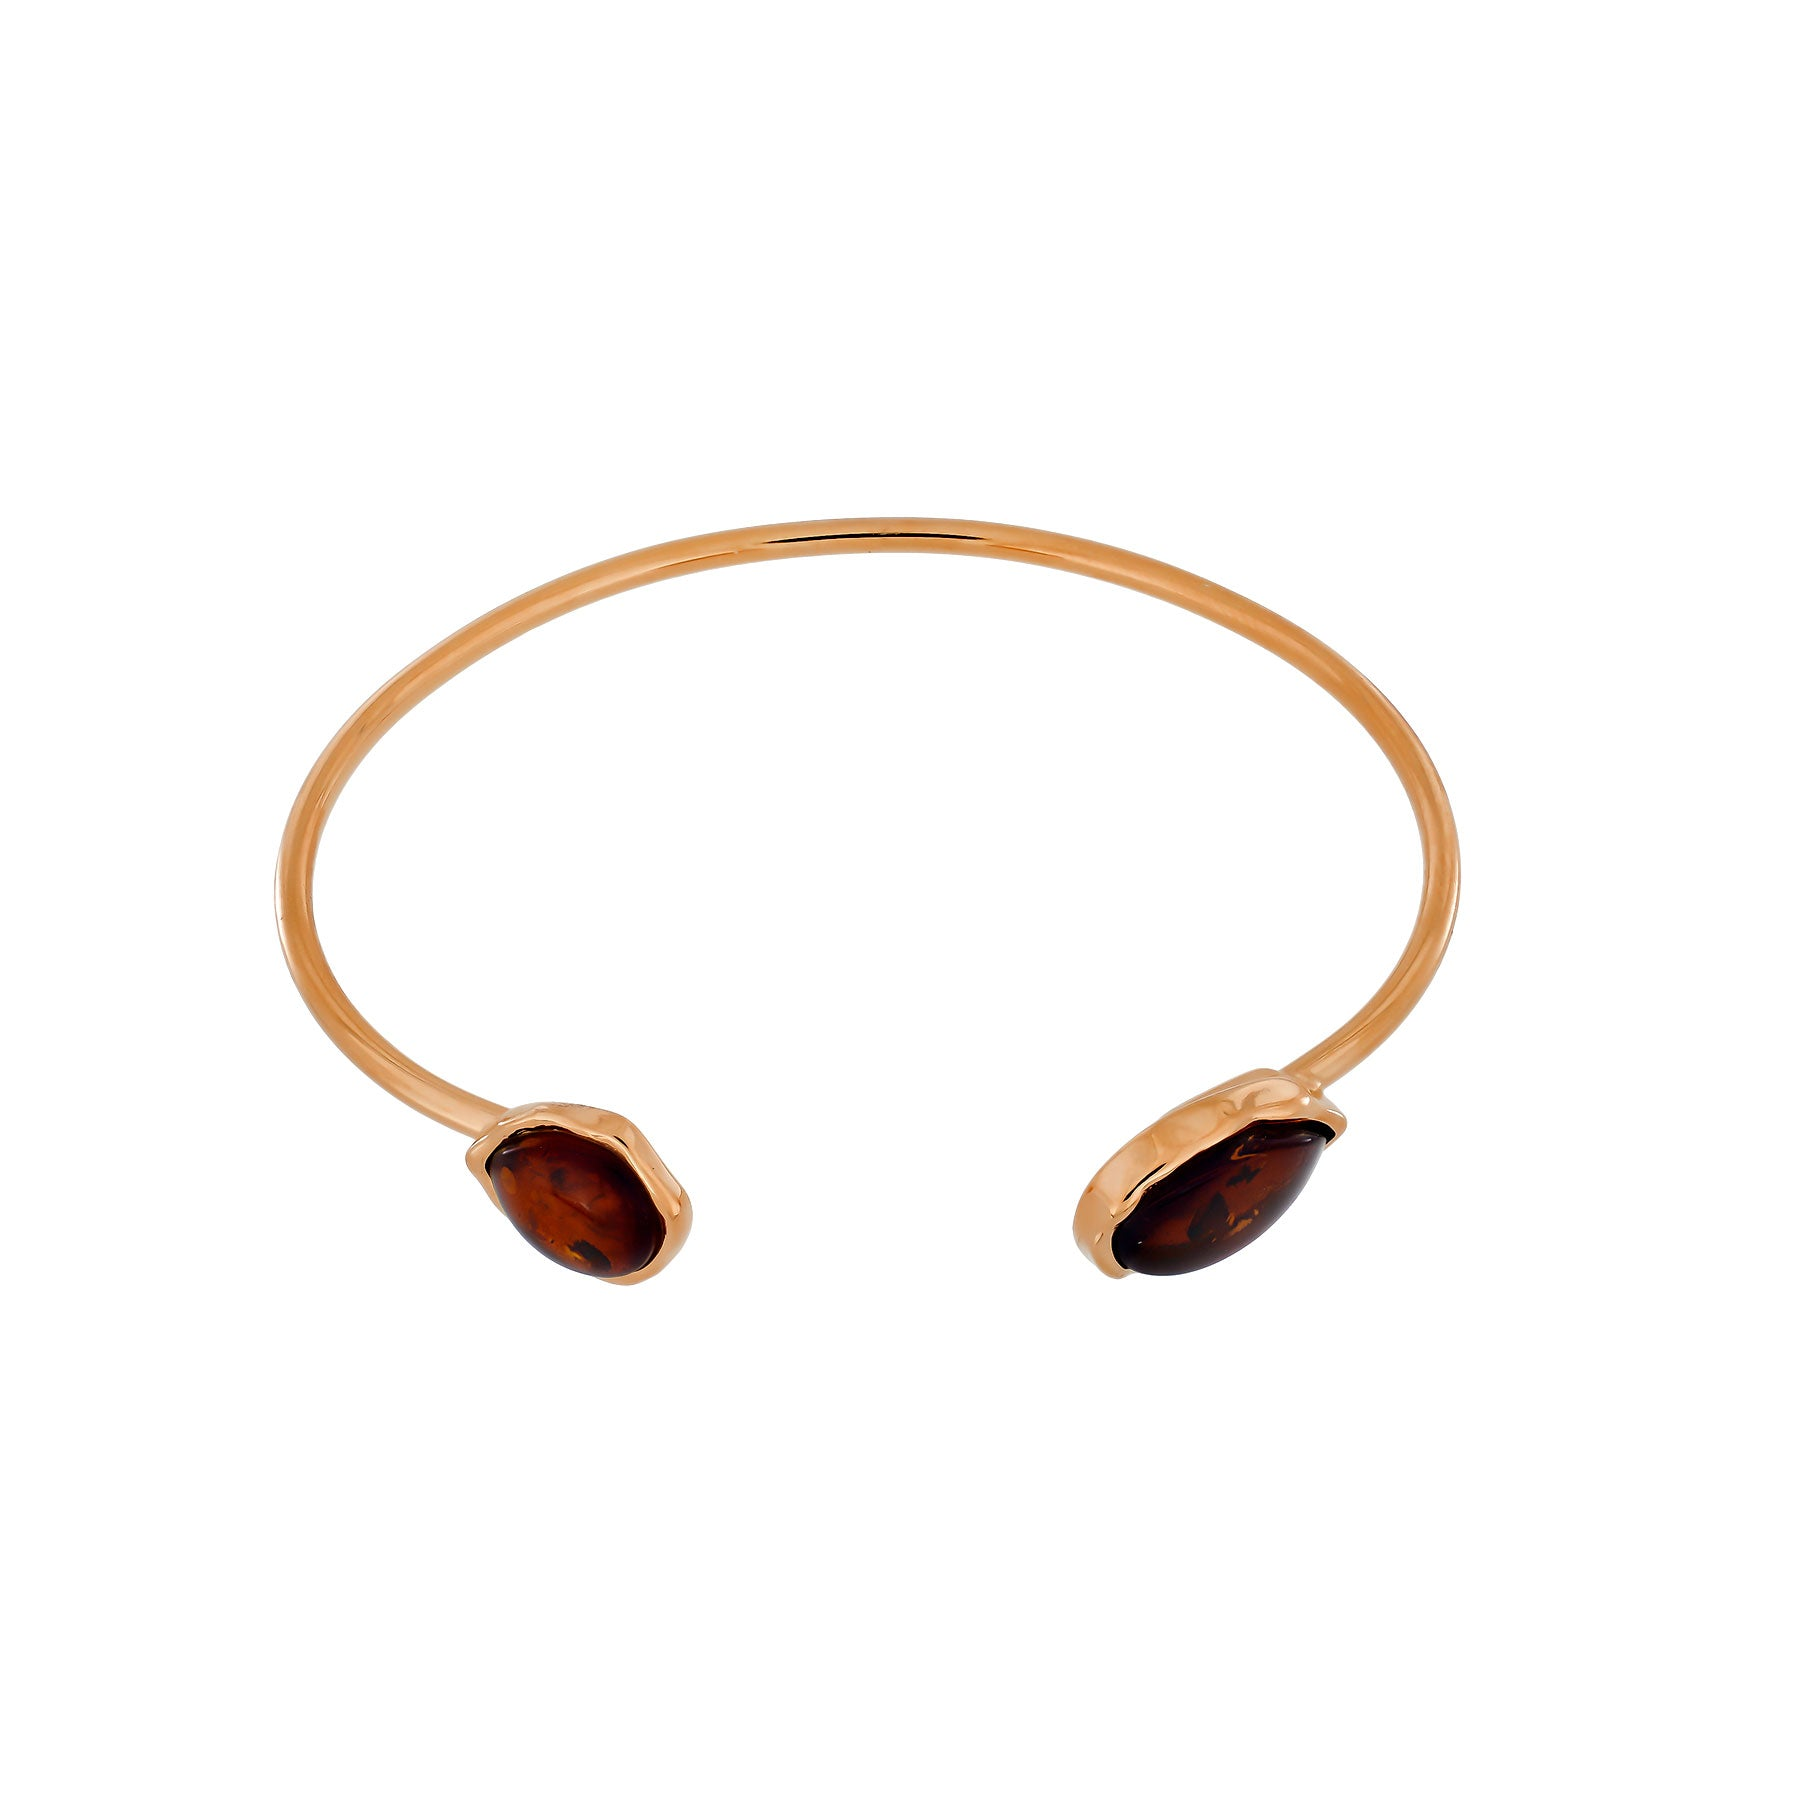 Northern Lights Baltic Amber Cuff in Rose Gold Vermeil